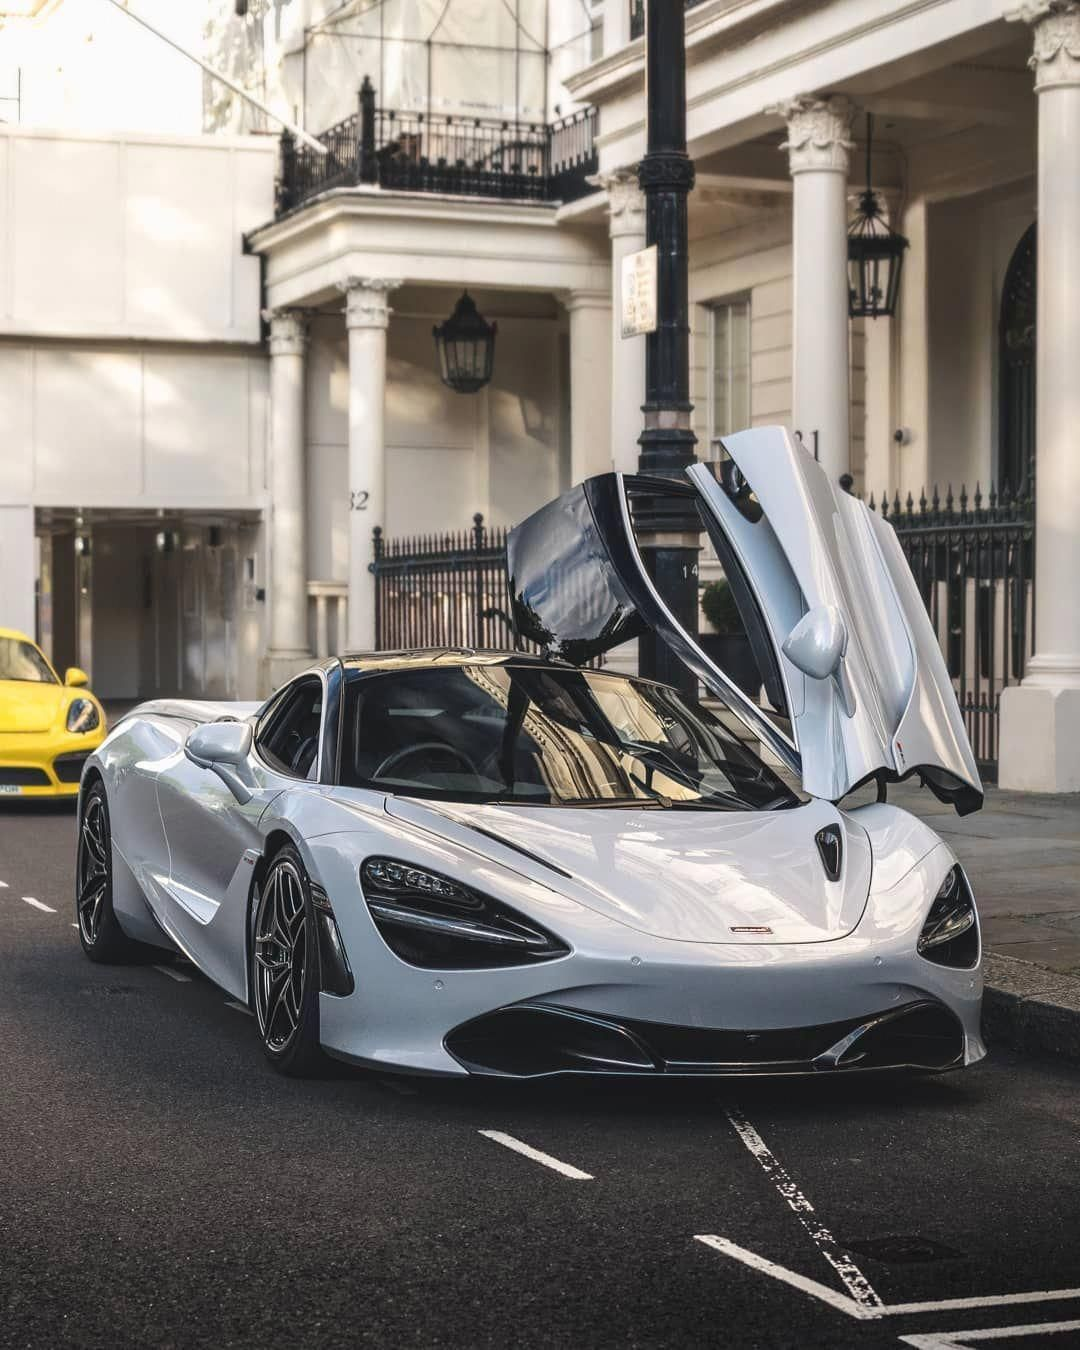 720s This Amazing Sport Cars Cool Nice Sportcars Newsportscars Luxurysportcar Newsportscars Nicesportscars Sp Sports Car Sport Cars Sports Cars